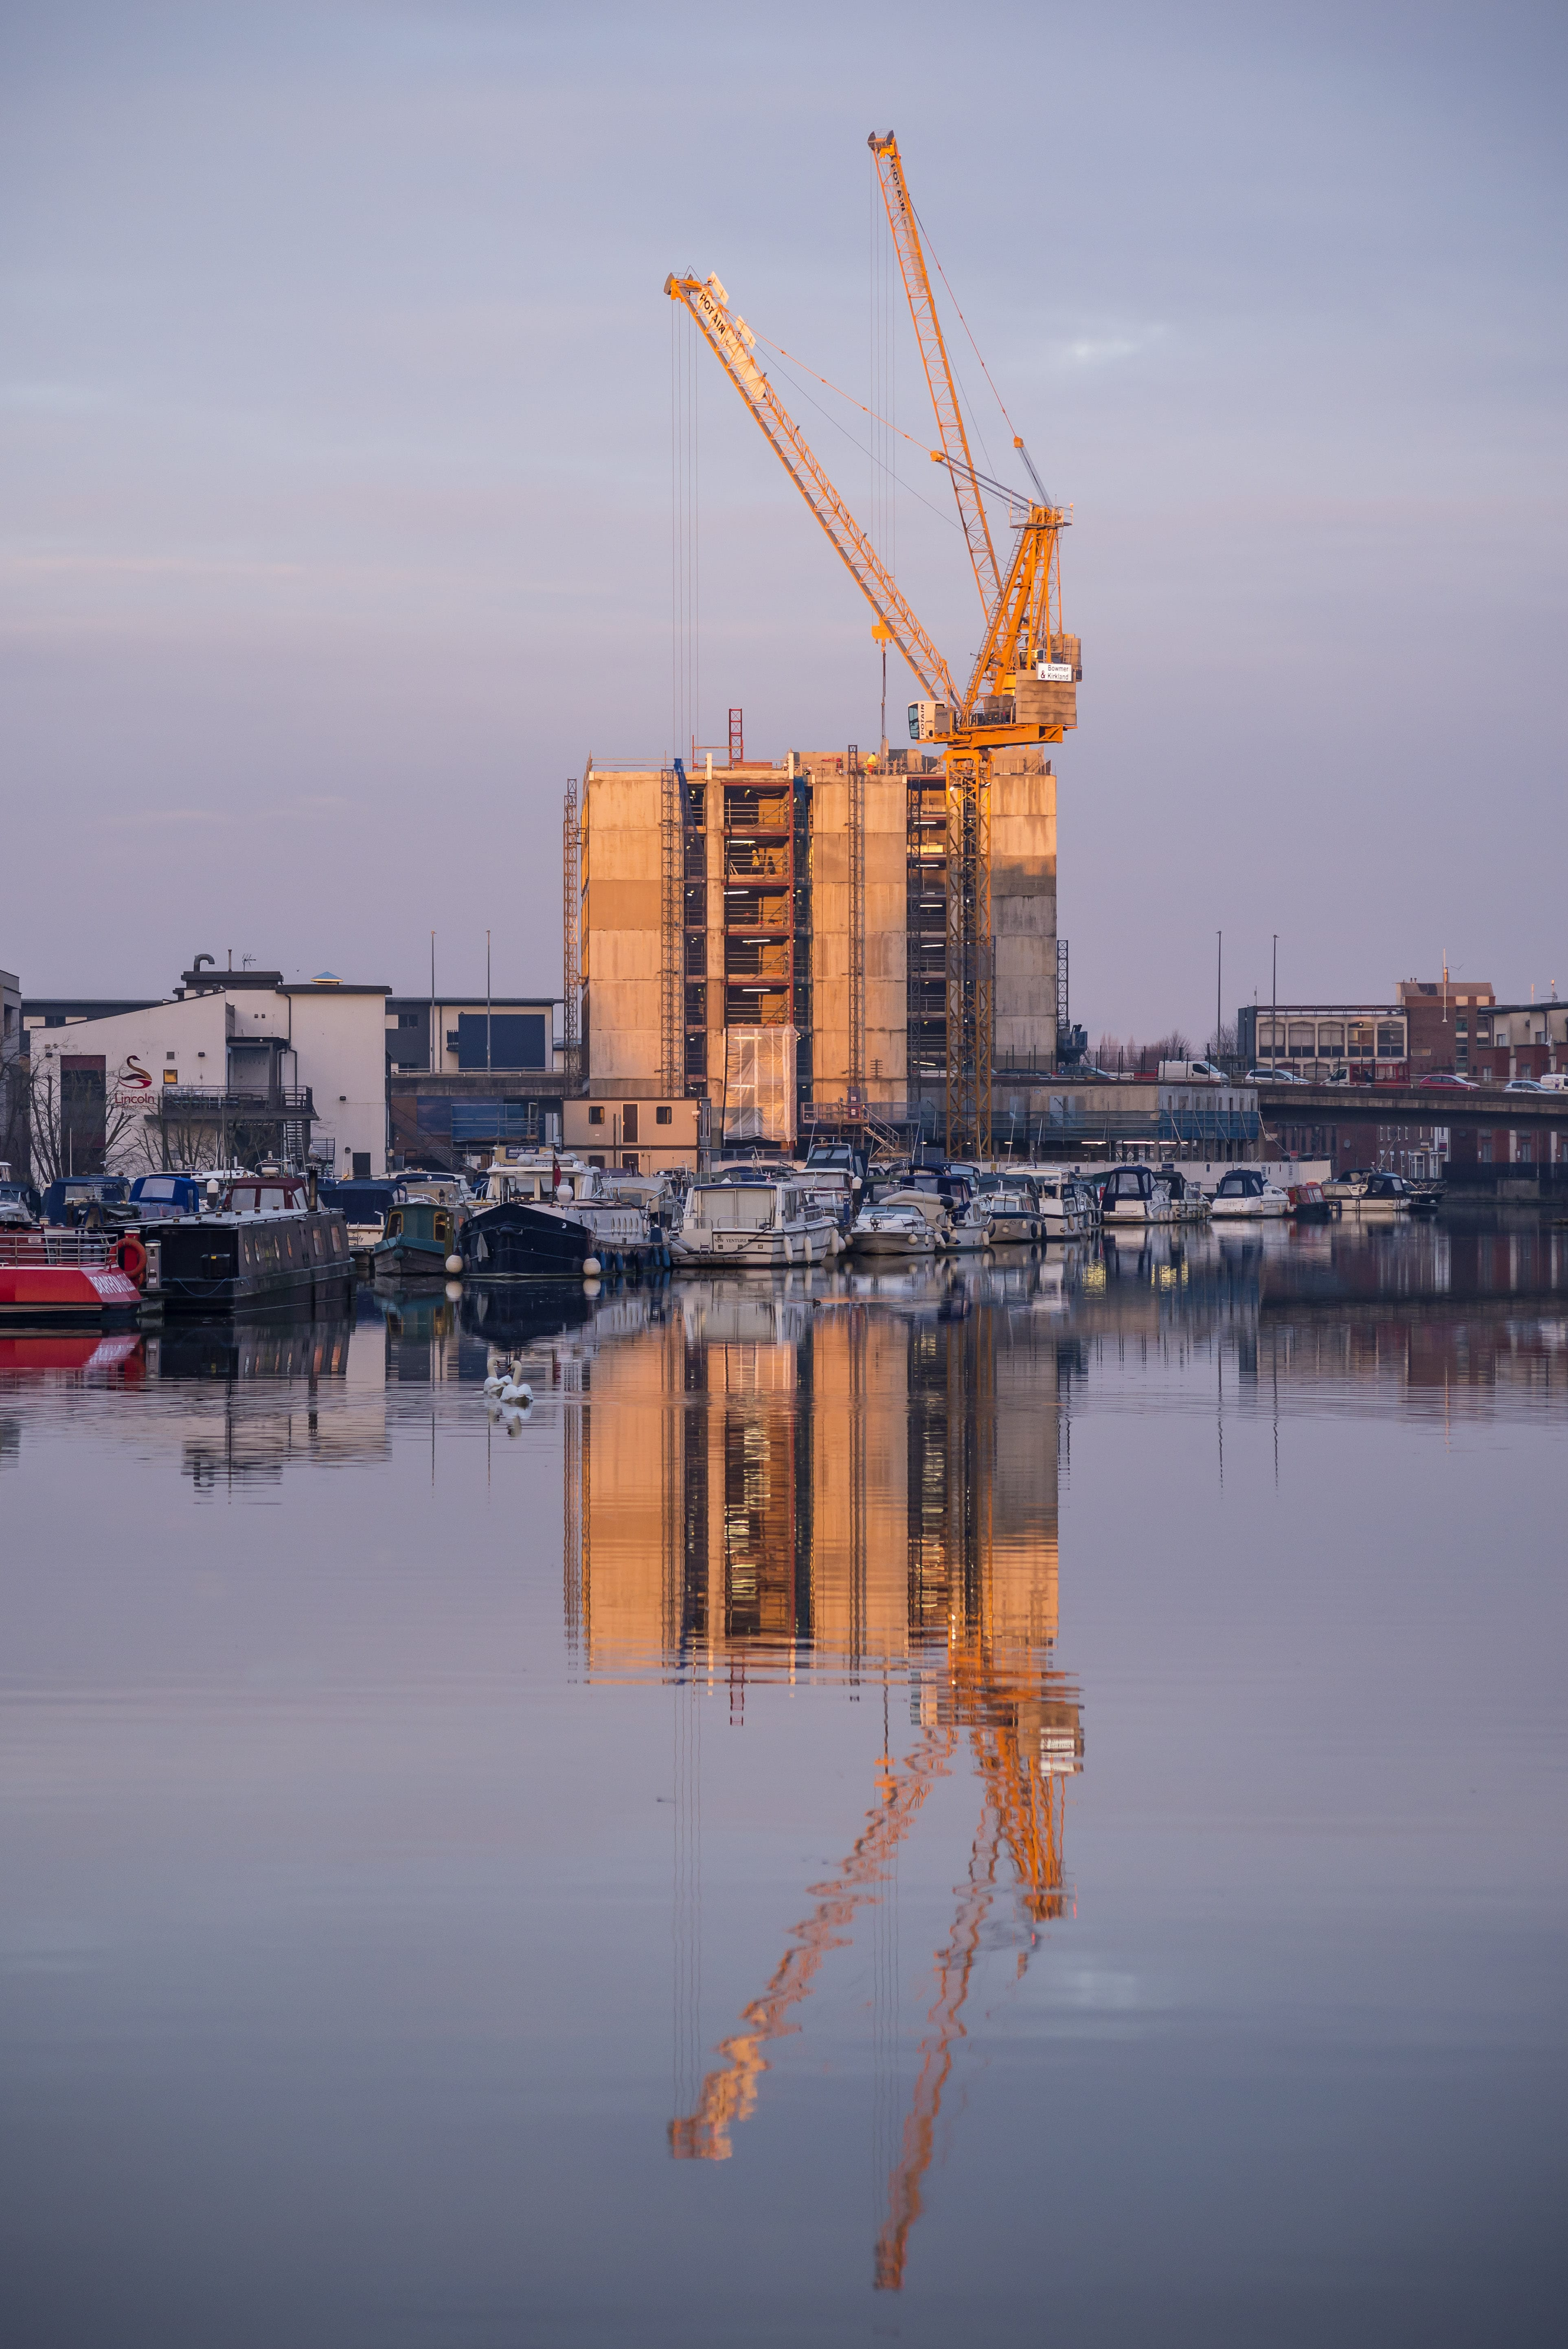 Image of an accommodation block being built by the water, a crane towers above it.